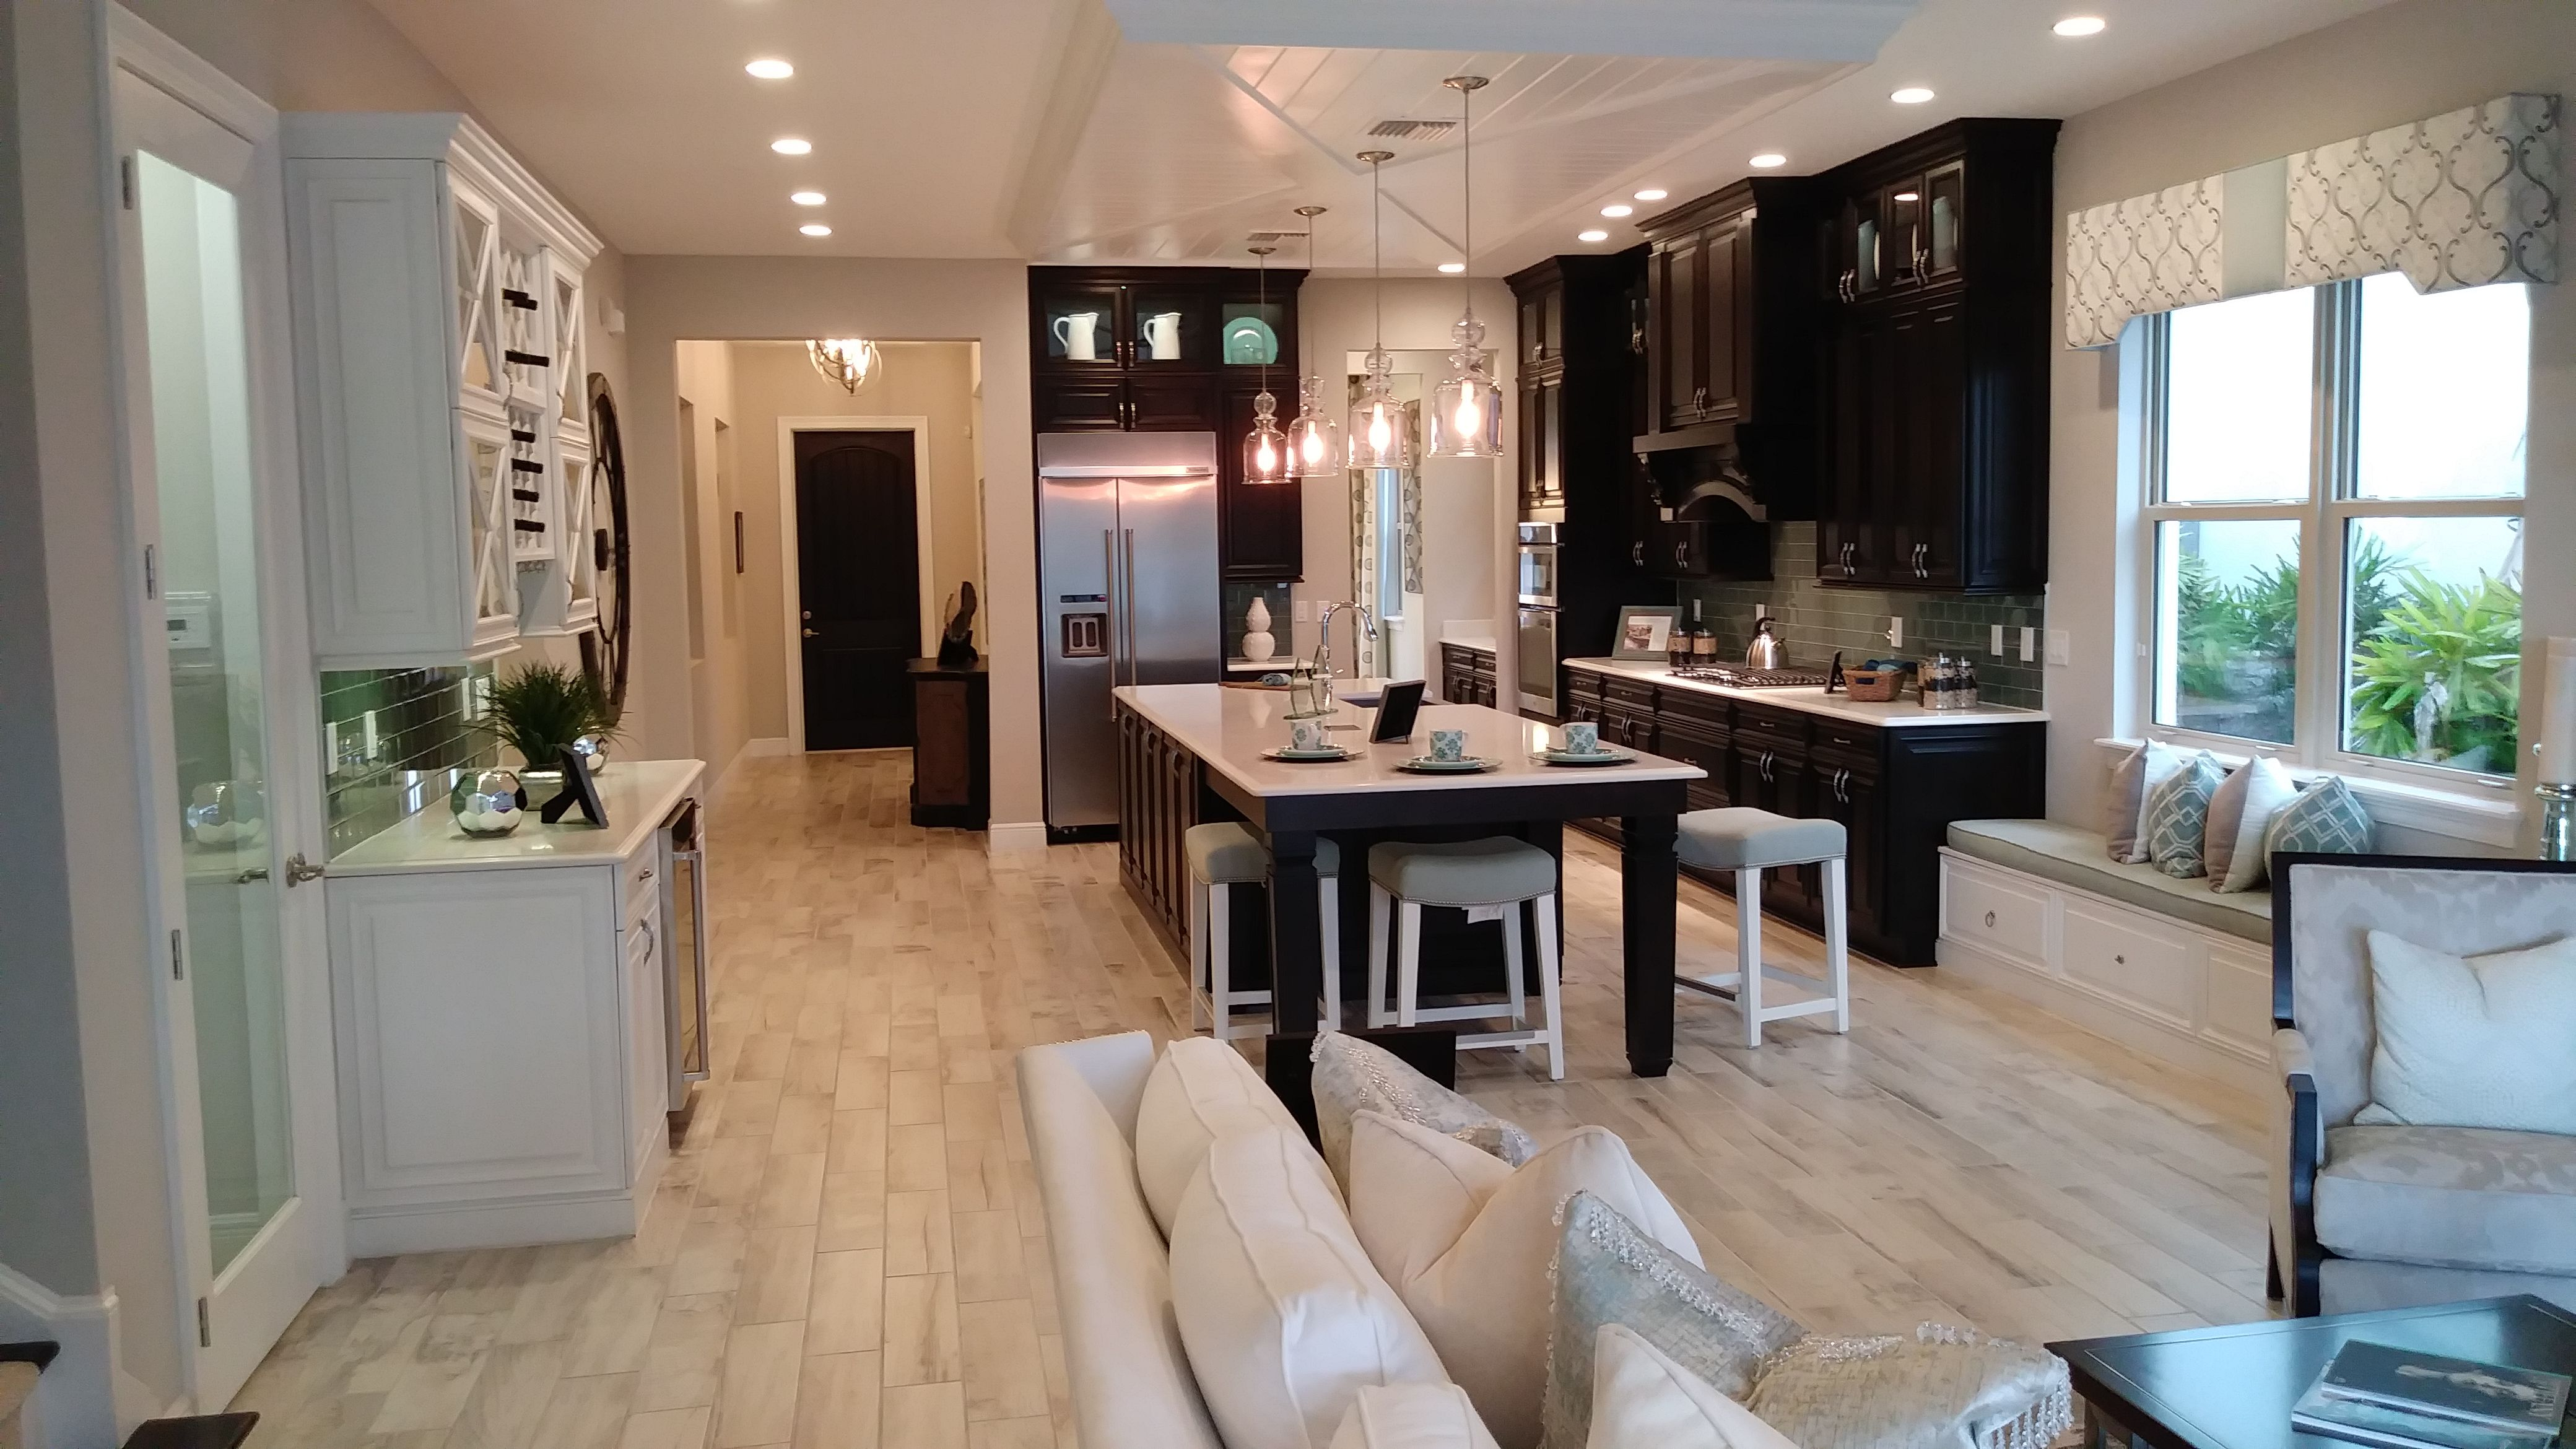 Fantastic New And Resale Homes At Affordable Prices In Horizon West Florida Wint New Homes Home Winter Garden